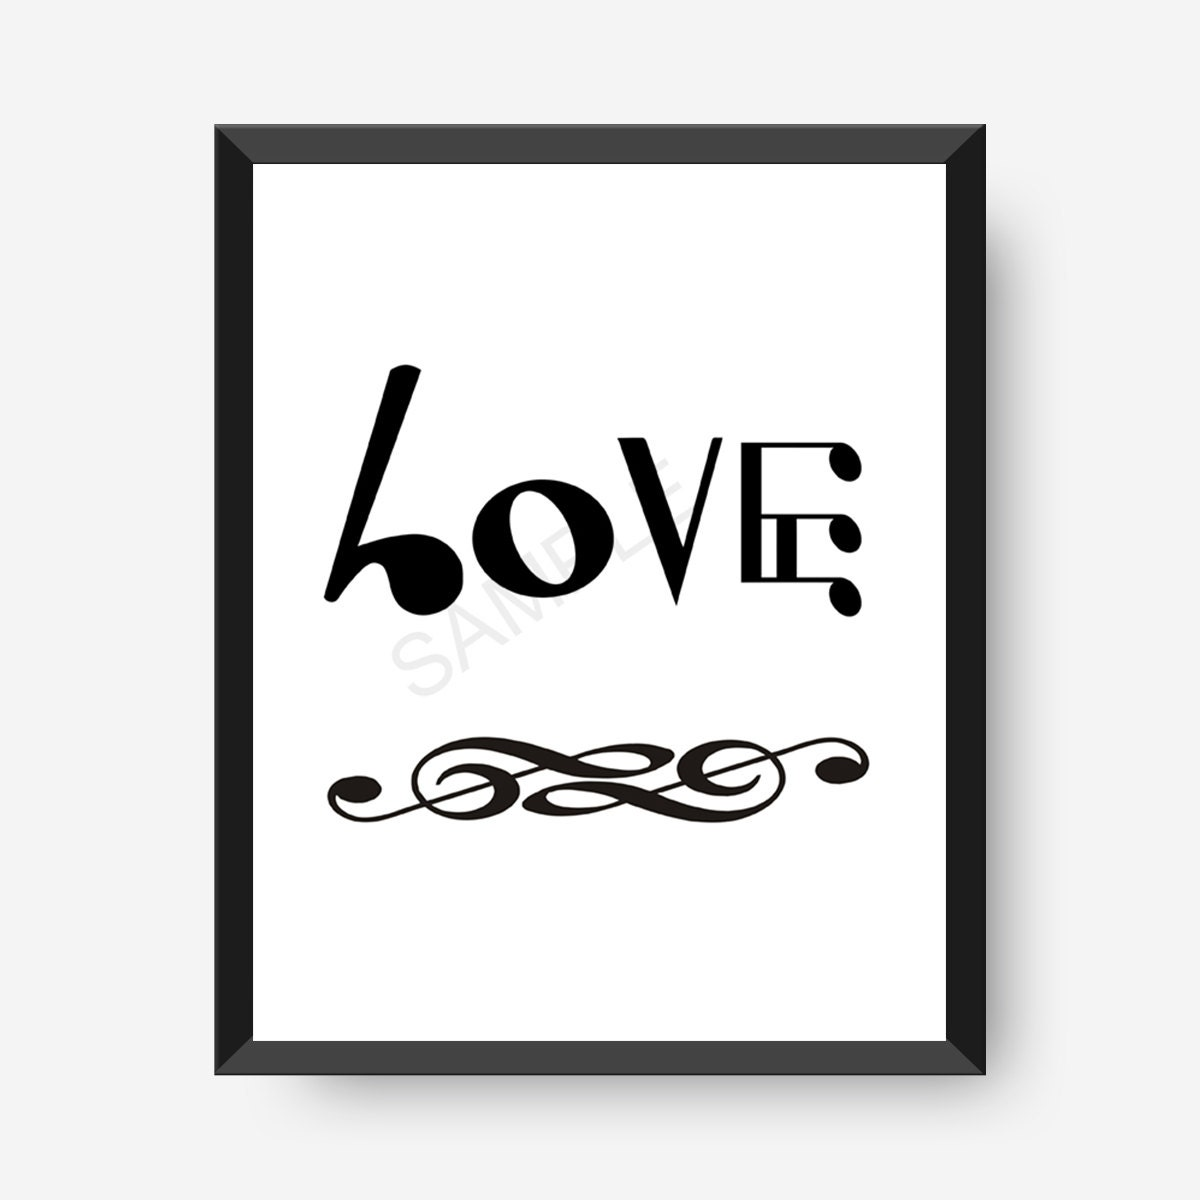 Music Notation Notes Music Art Love Notes Music Note Art Music Notation Art